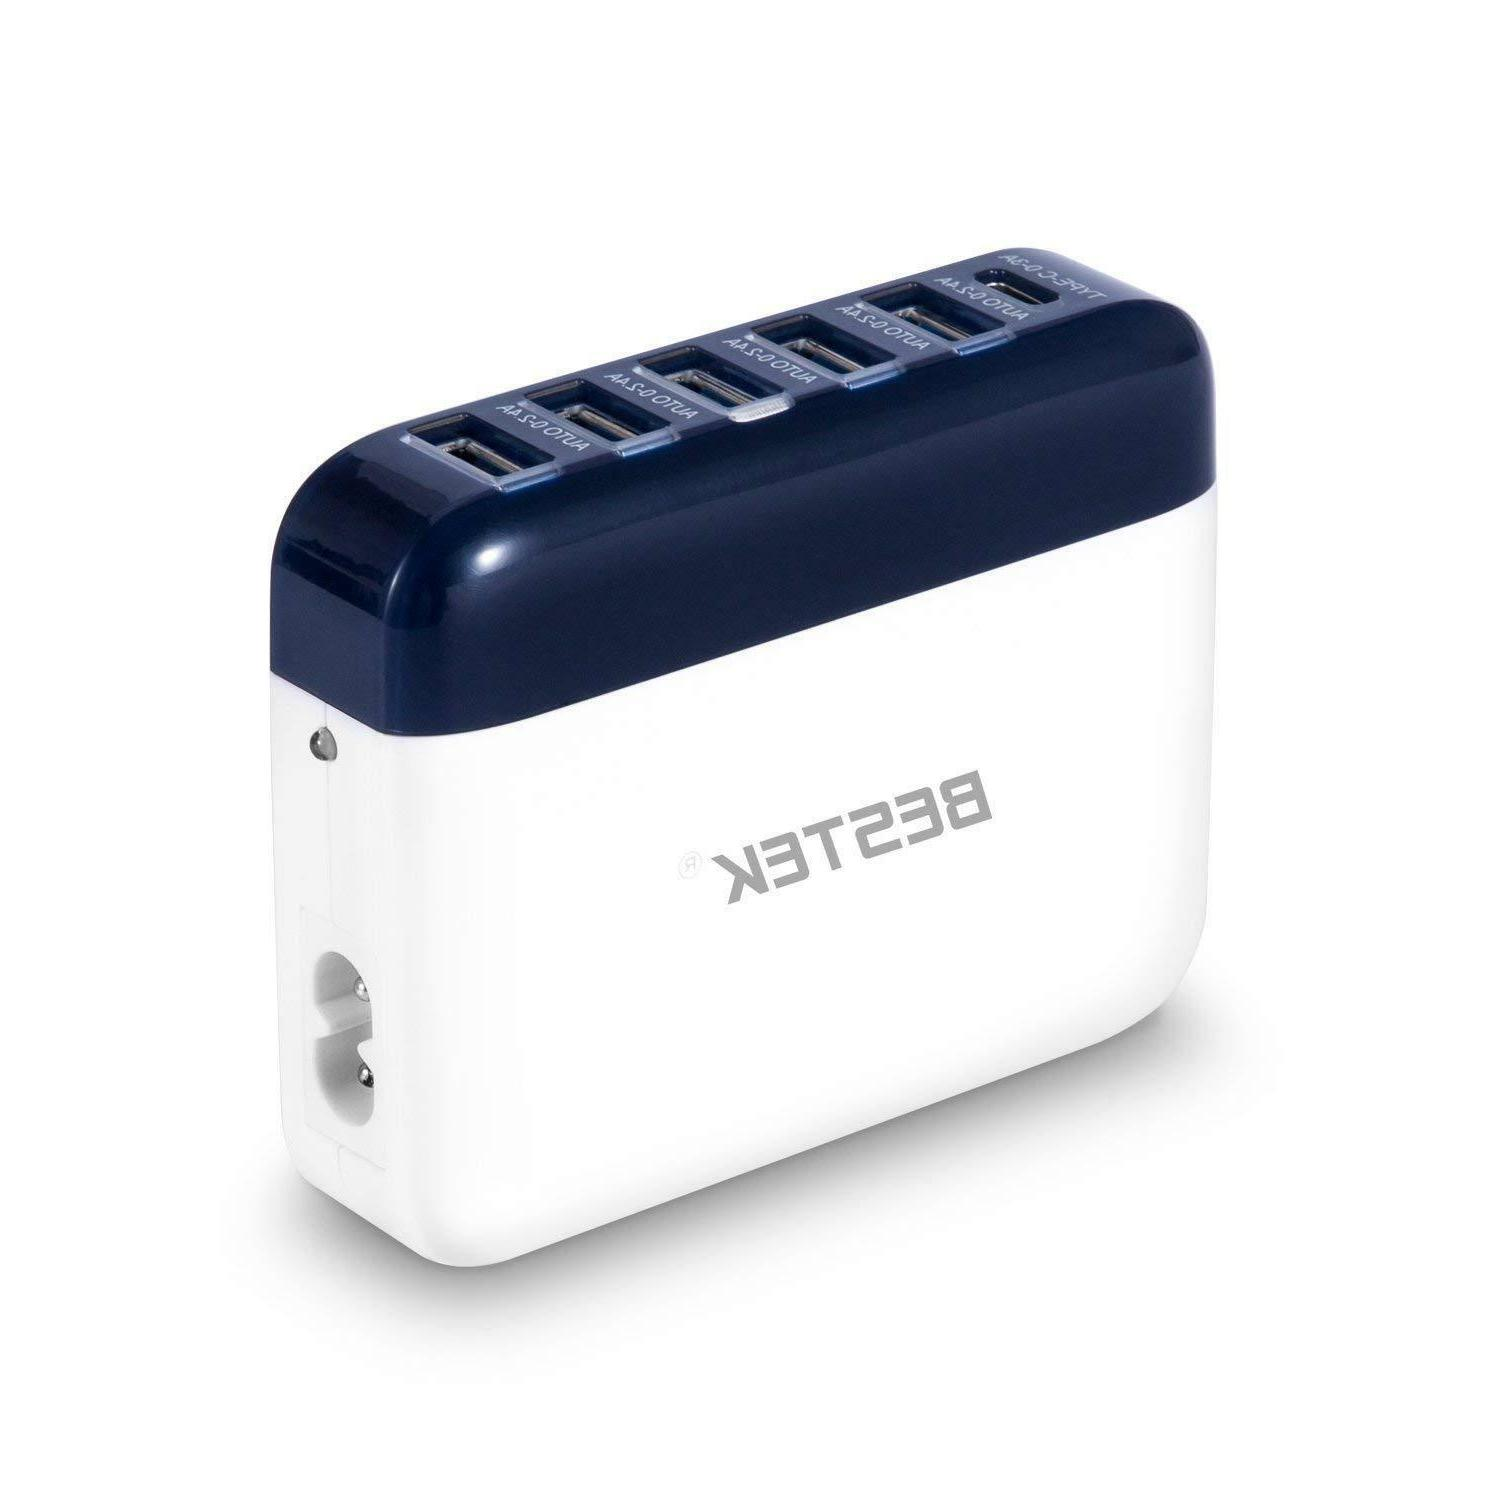 40W USB Wall Charger, BESTEK 6 Port 2.4A Quick Charger with